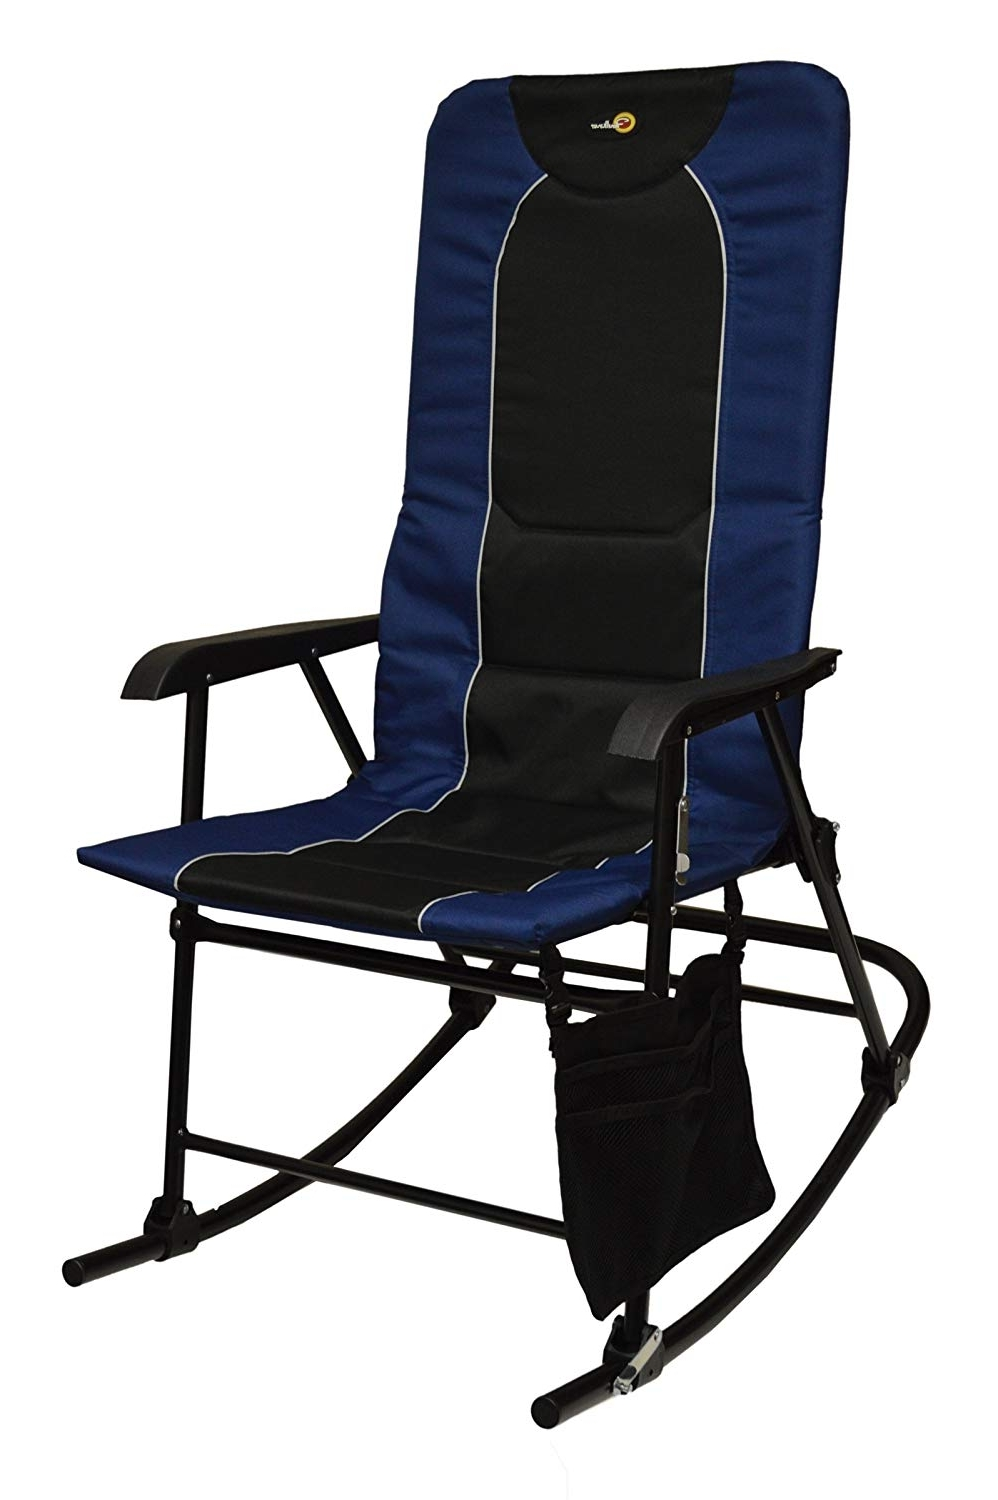 Widely Used Amazon : Faulkner 49598 Dakota Rocking Chair, Blue/black With Regard To Padded Patio Rocking Chairs (View 15 of 15)